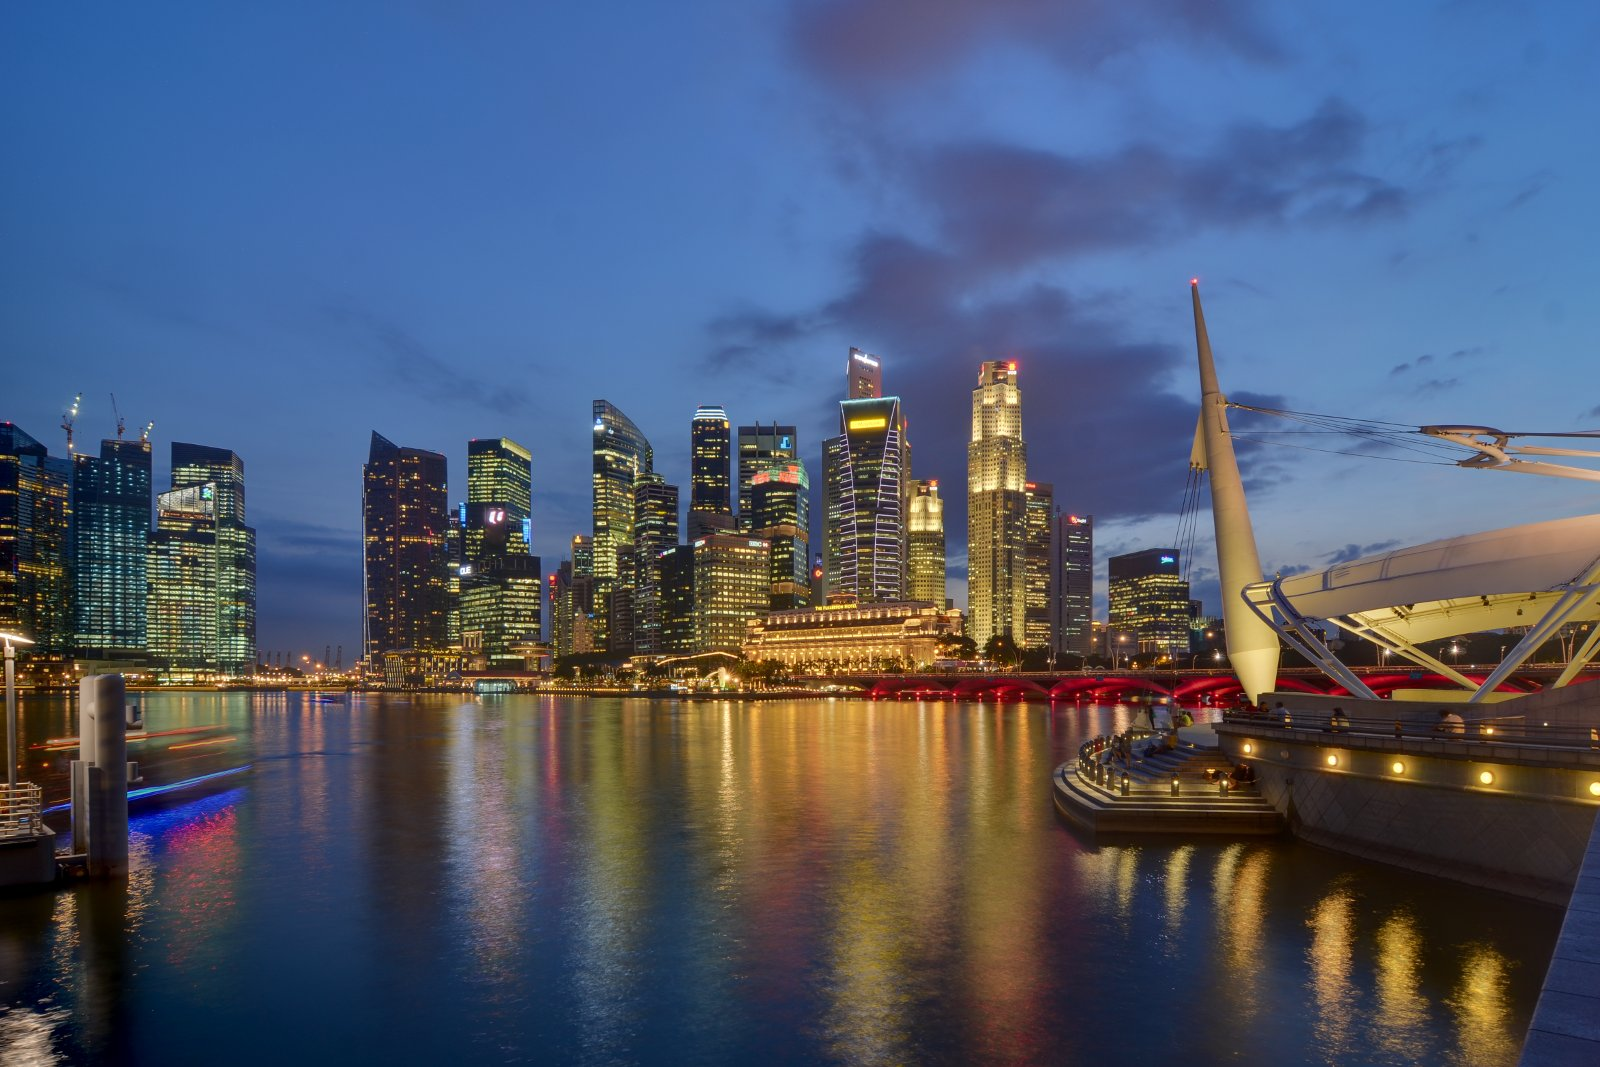 Singapore Singapore  city photos : Description Singapore CBD skyline from Esplanade at dusk